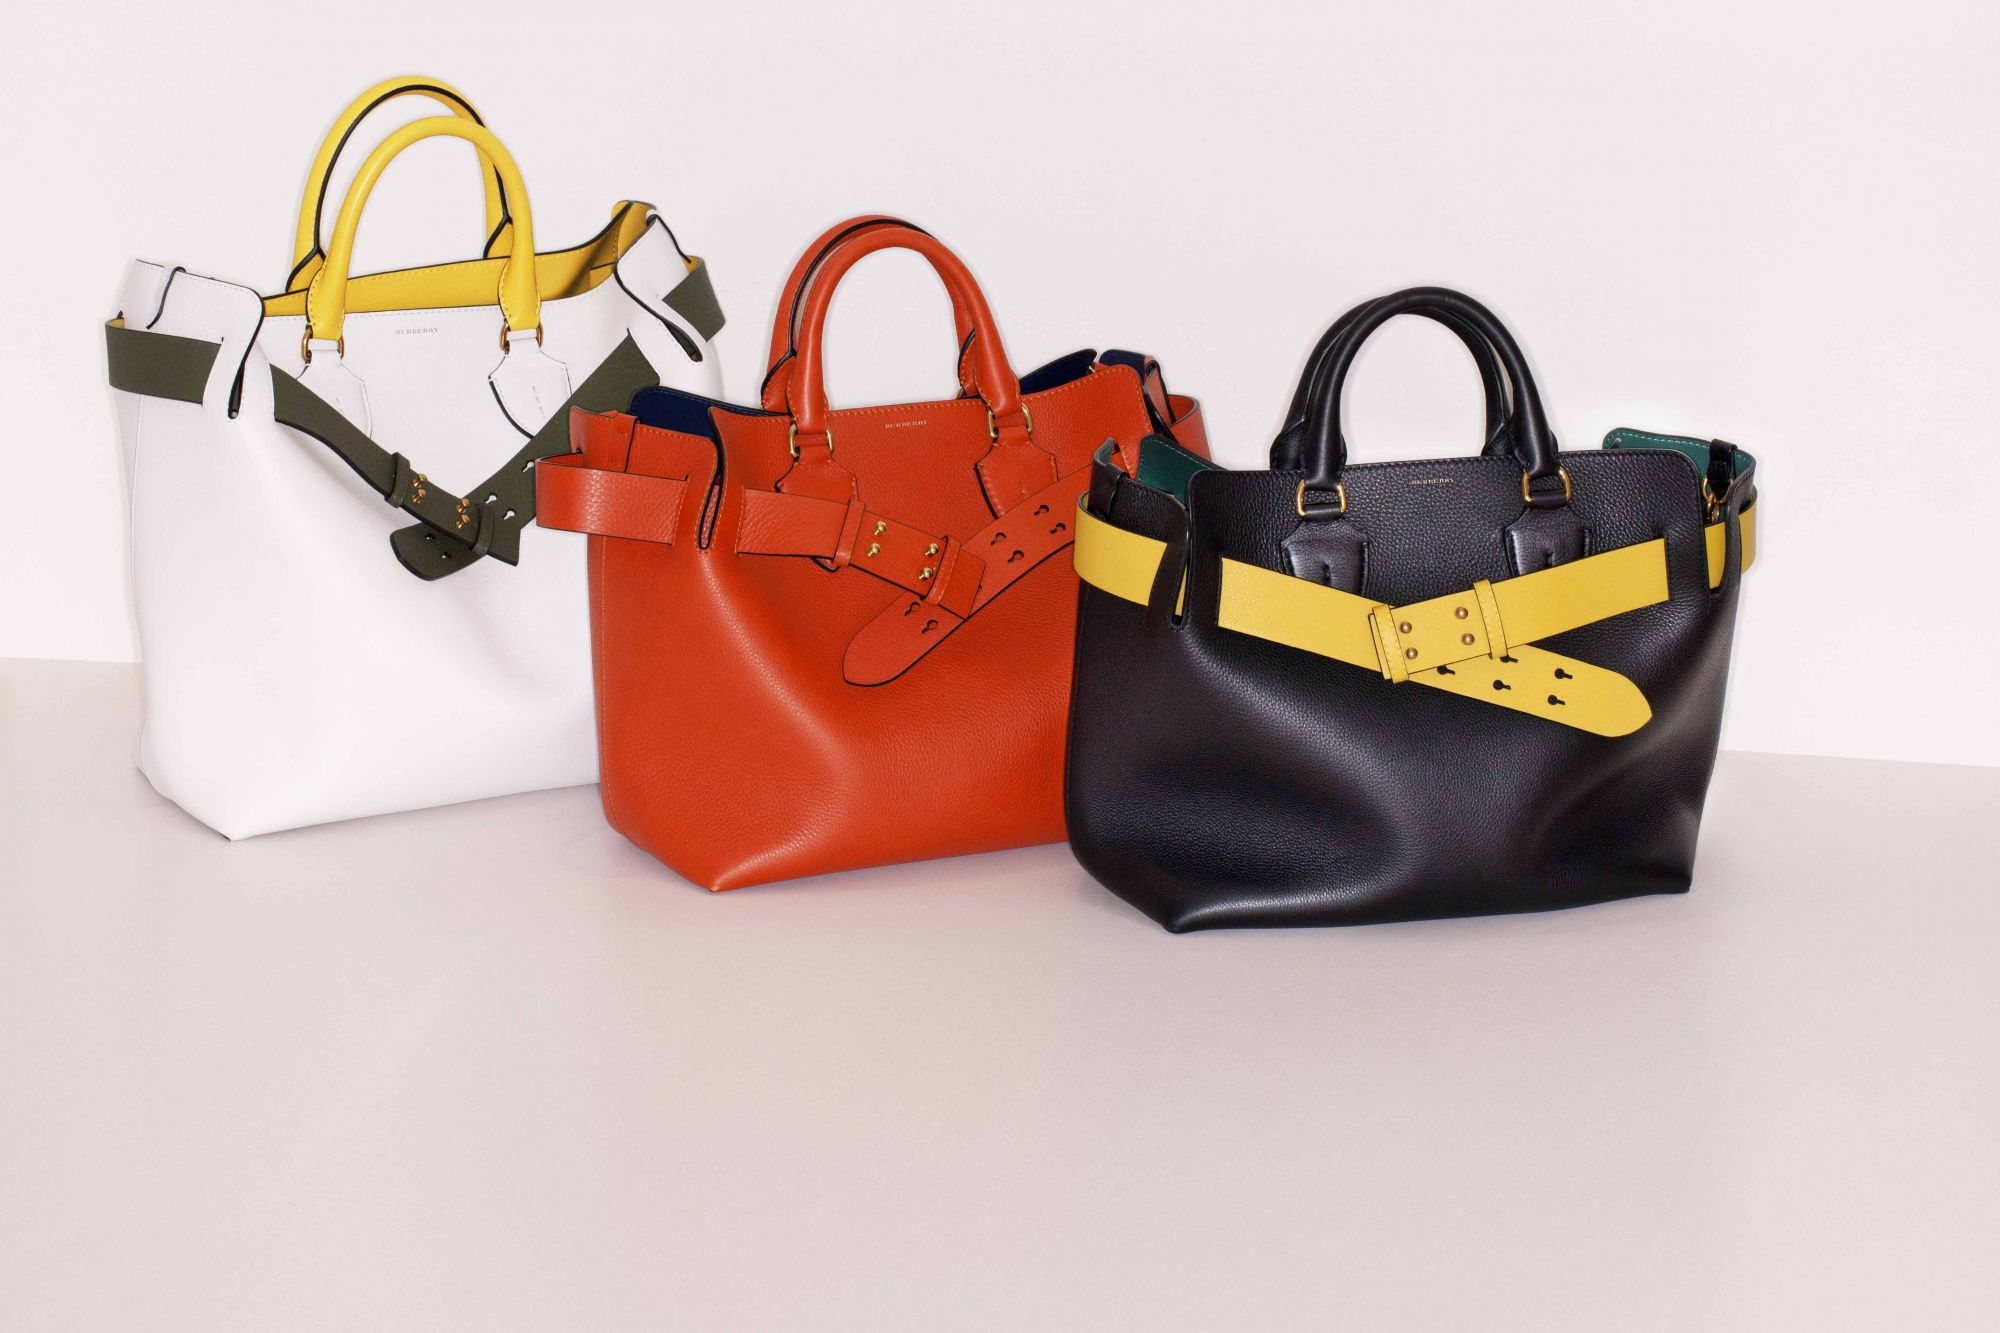 Shop Limited Edition Bags At The Burberry Conservatory